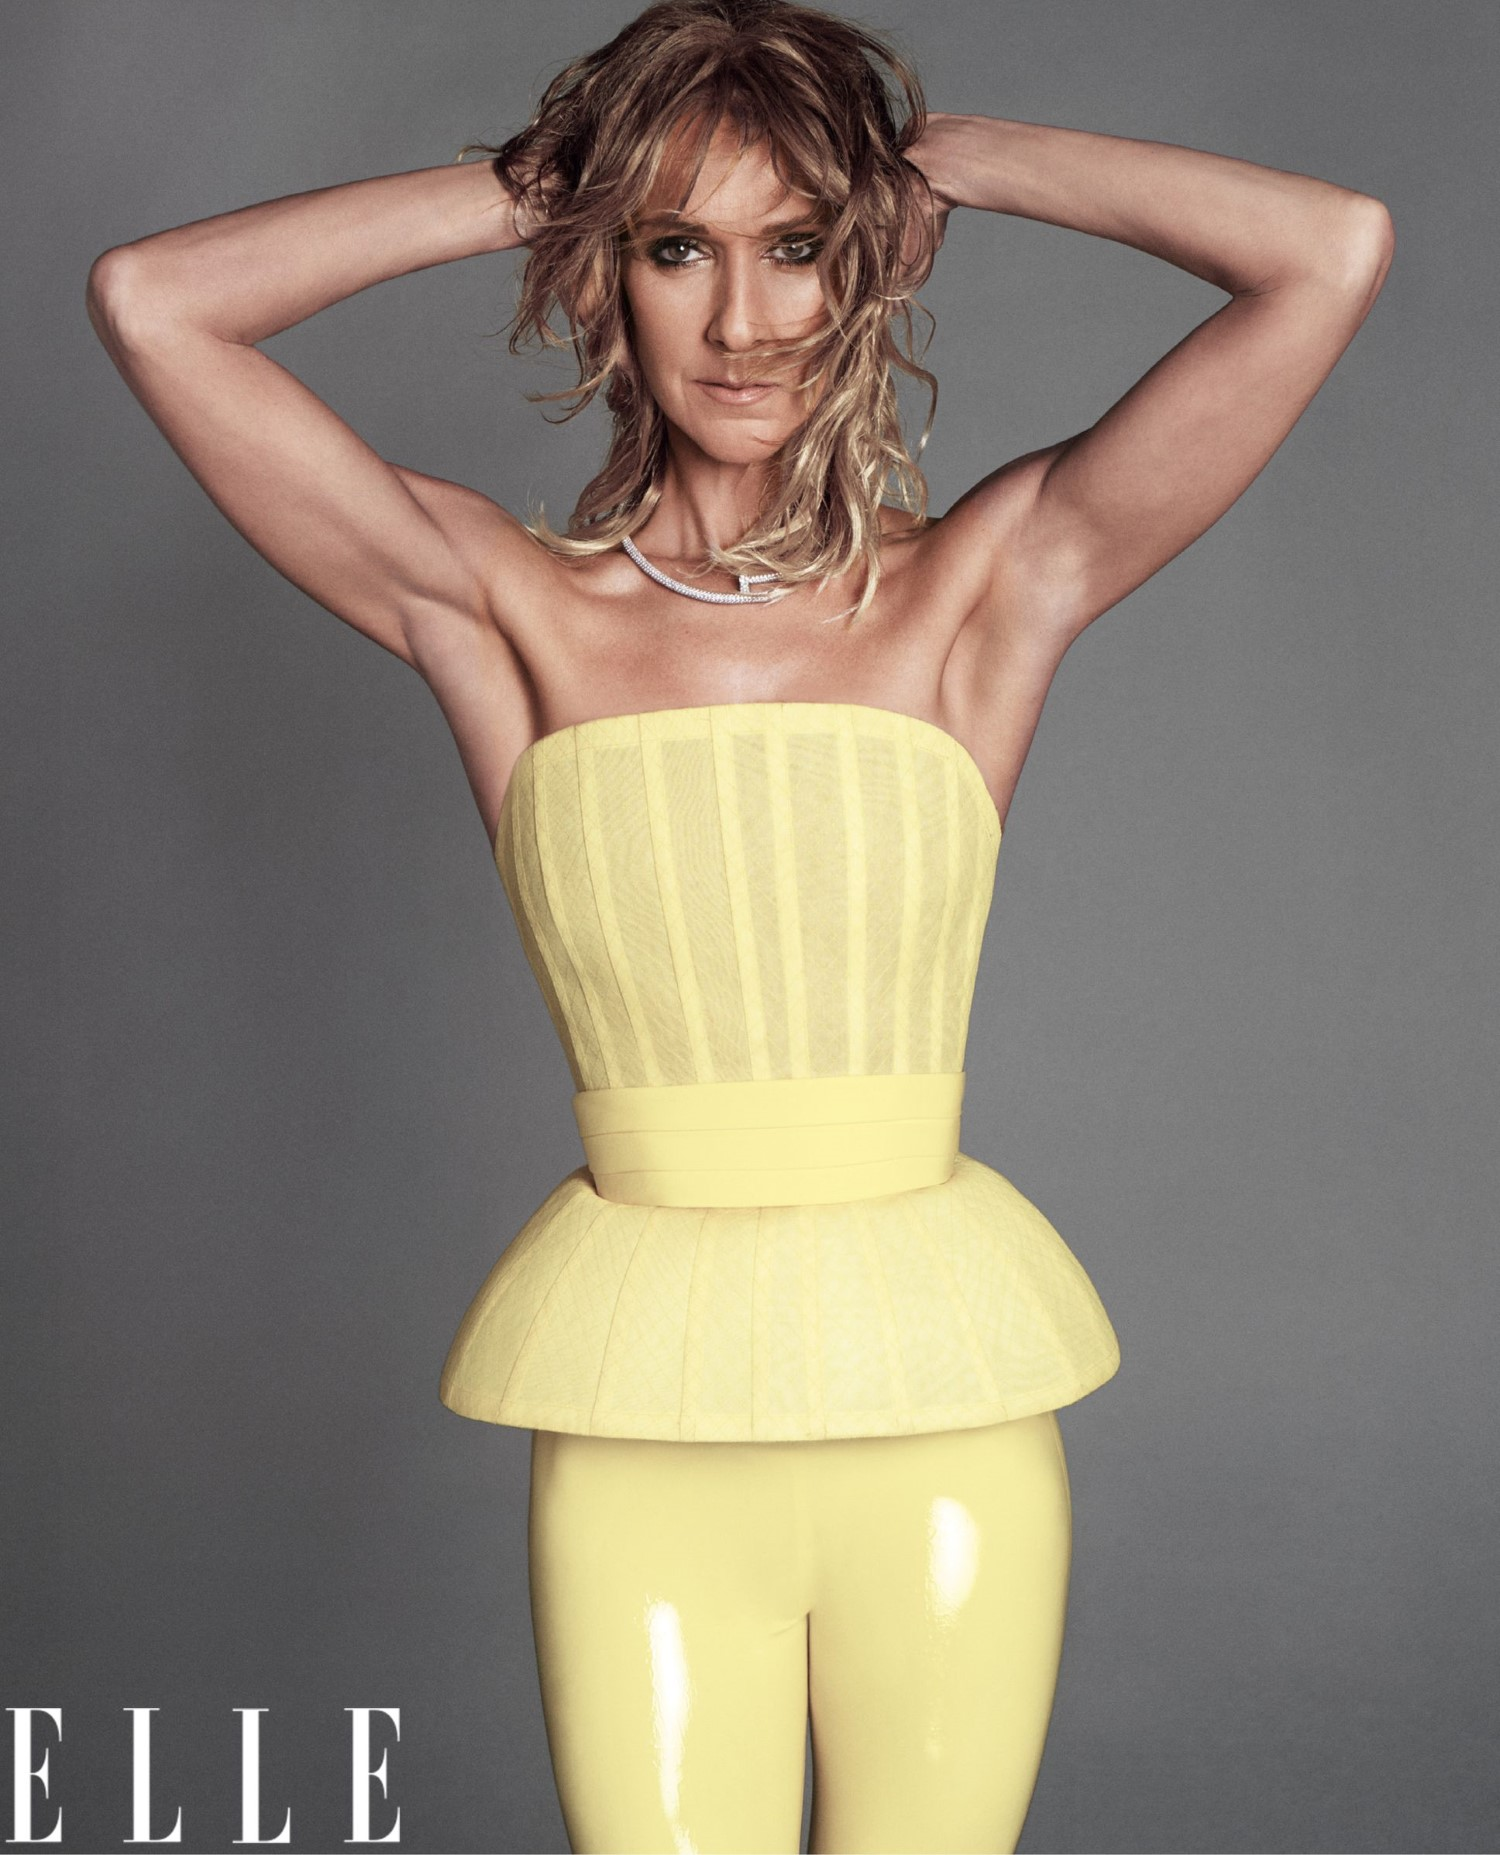 Celine-Dion-Tom-Munro-ELLE-June-2019- (6).jpg